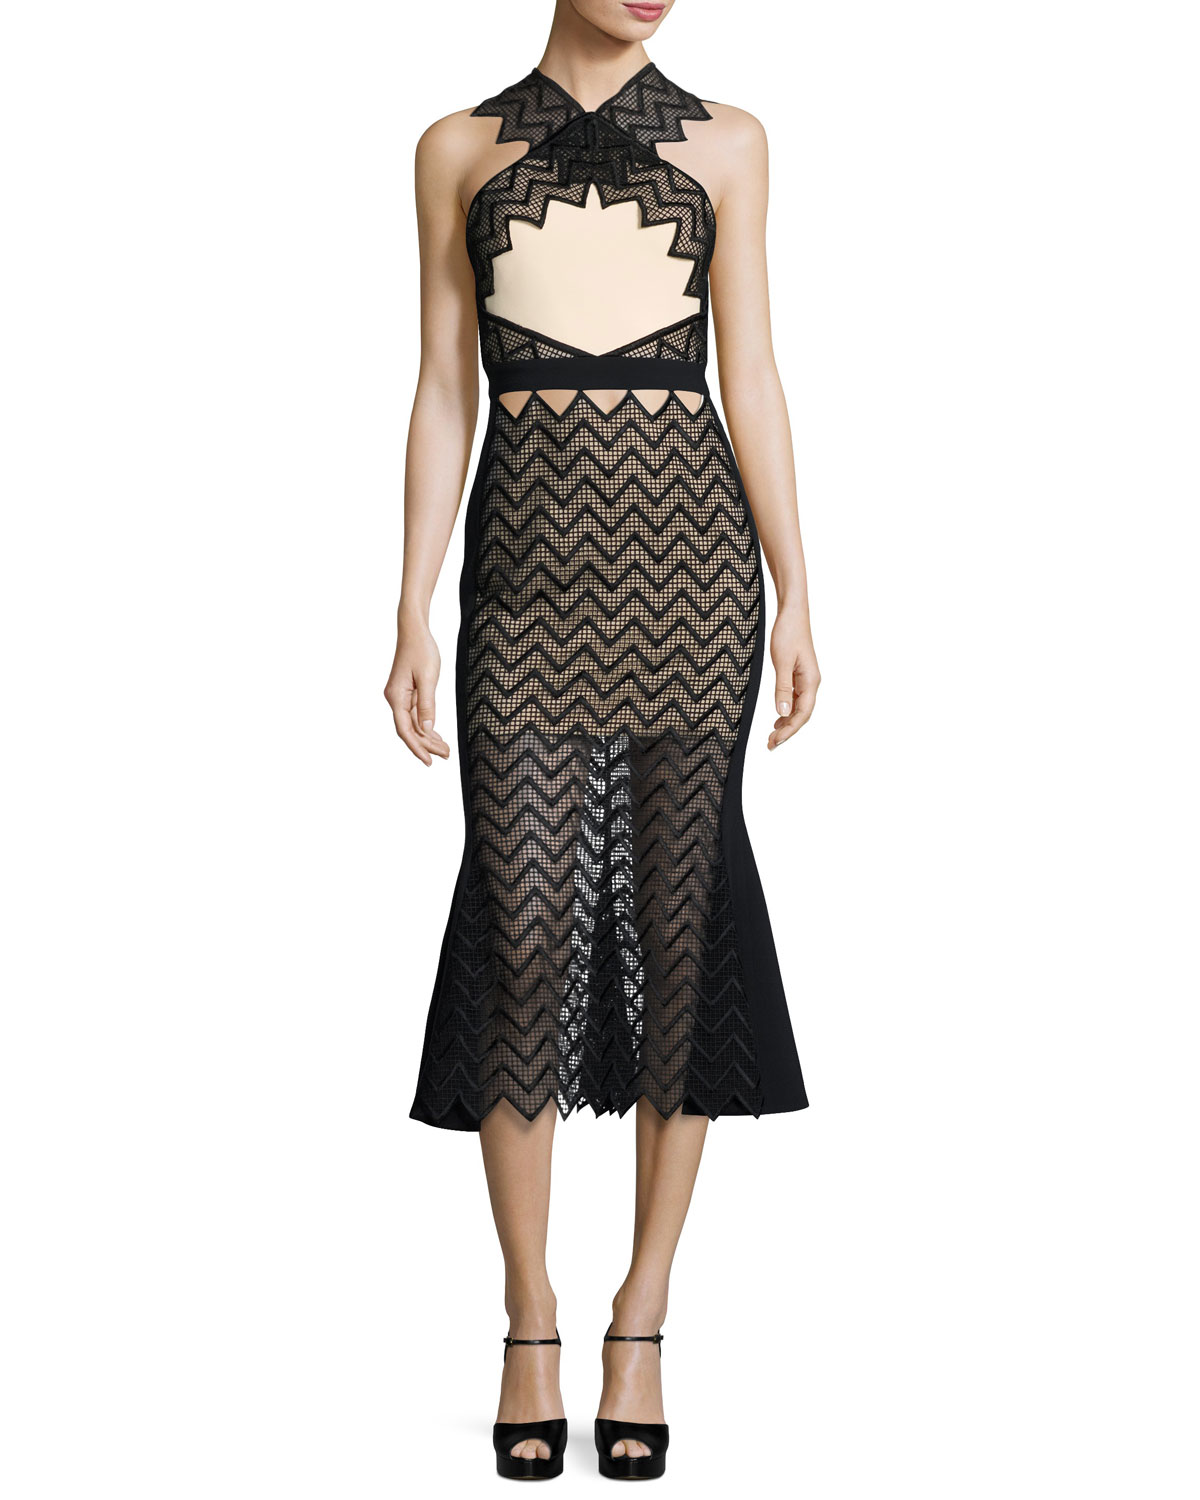 Macrame Cady Halter Midi Dress, Black/Peach